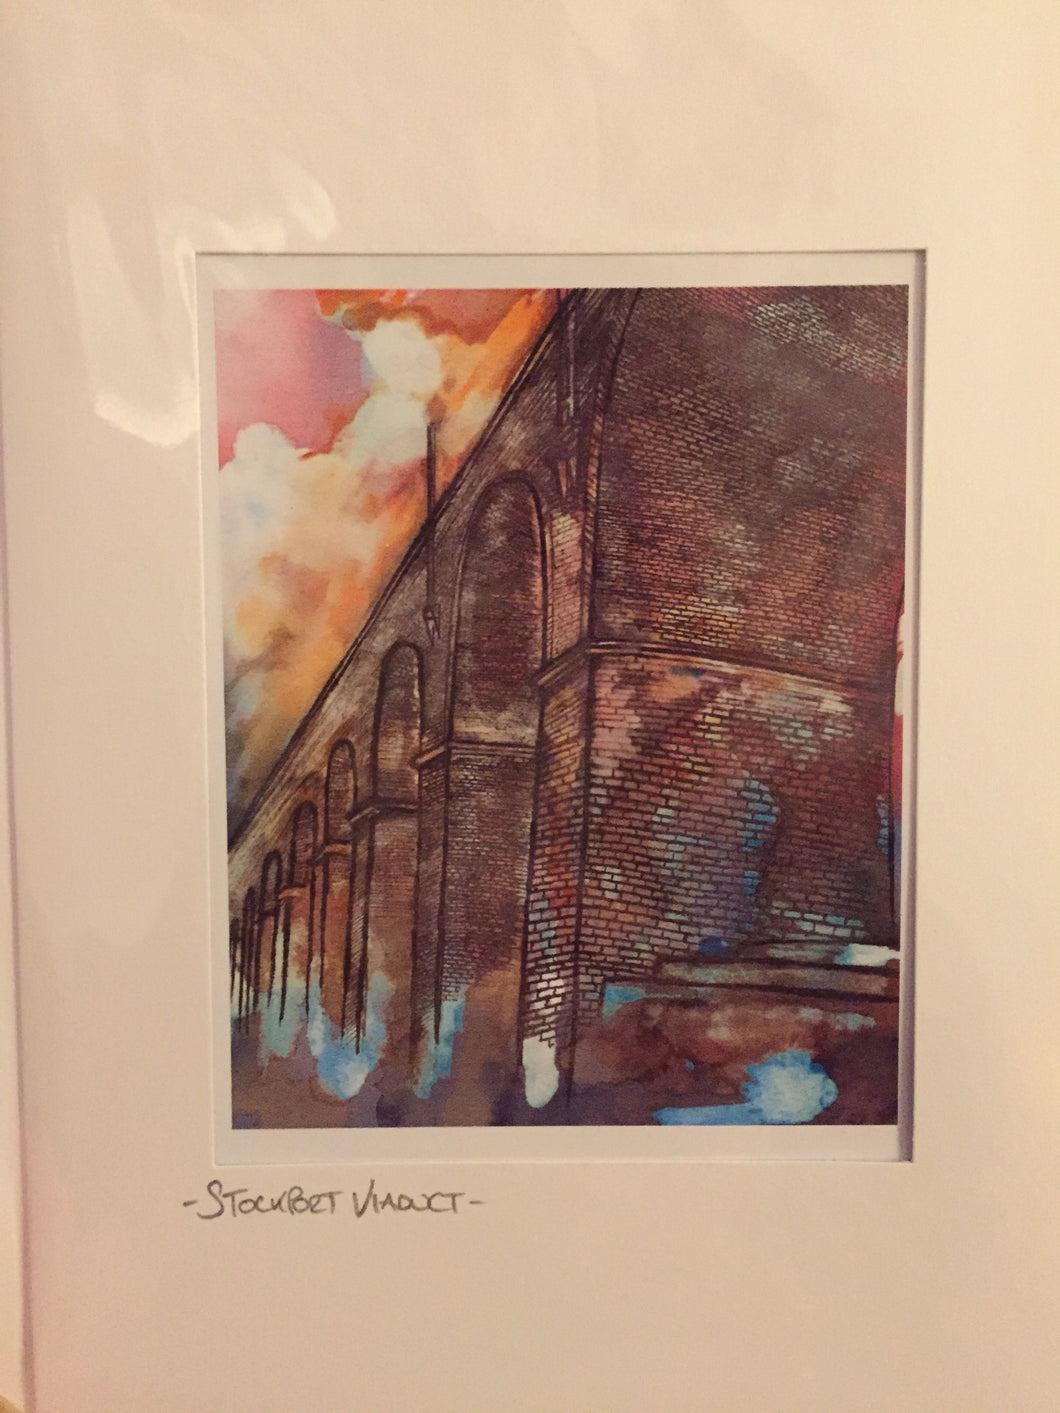 Stockport Viaduct Greetings Card